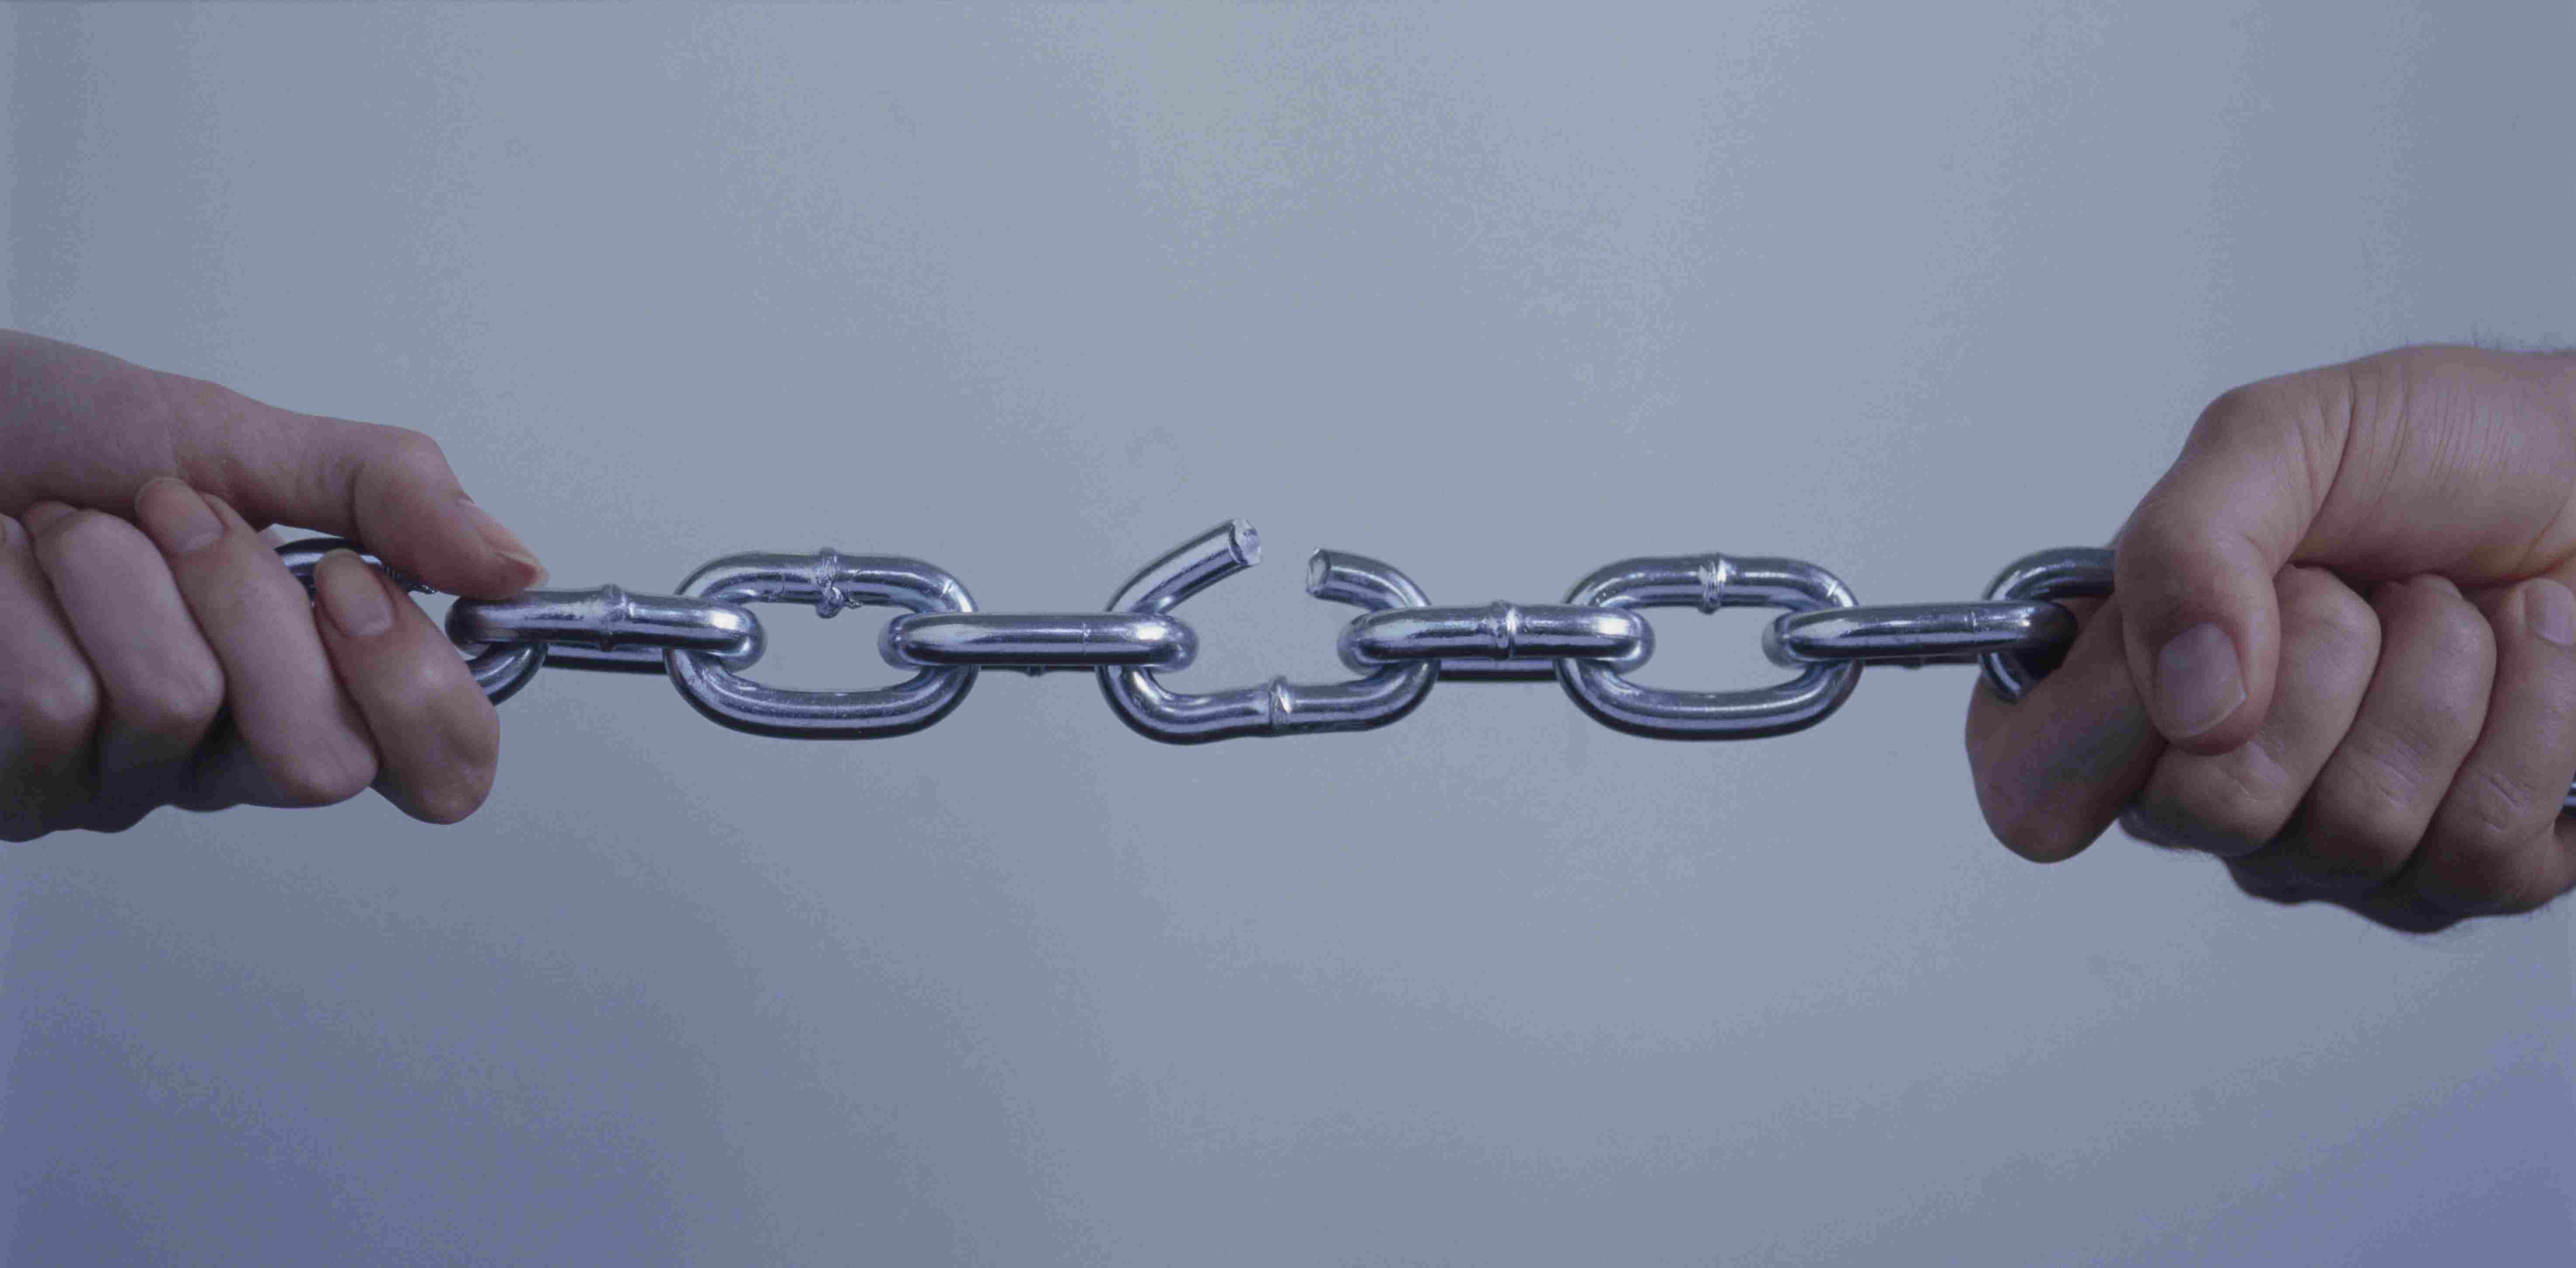 Hands pulling on chain with broken link